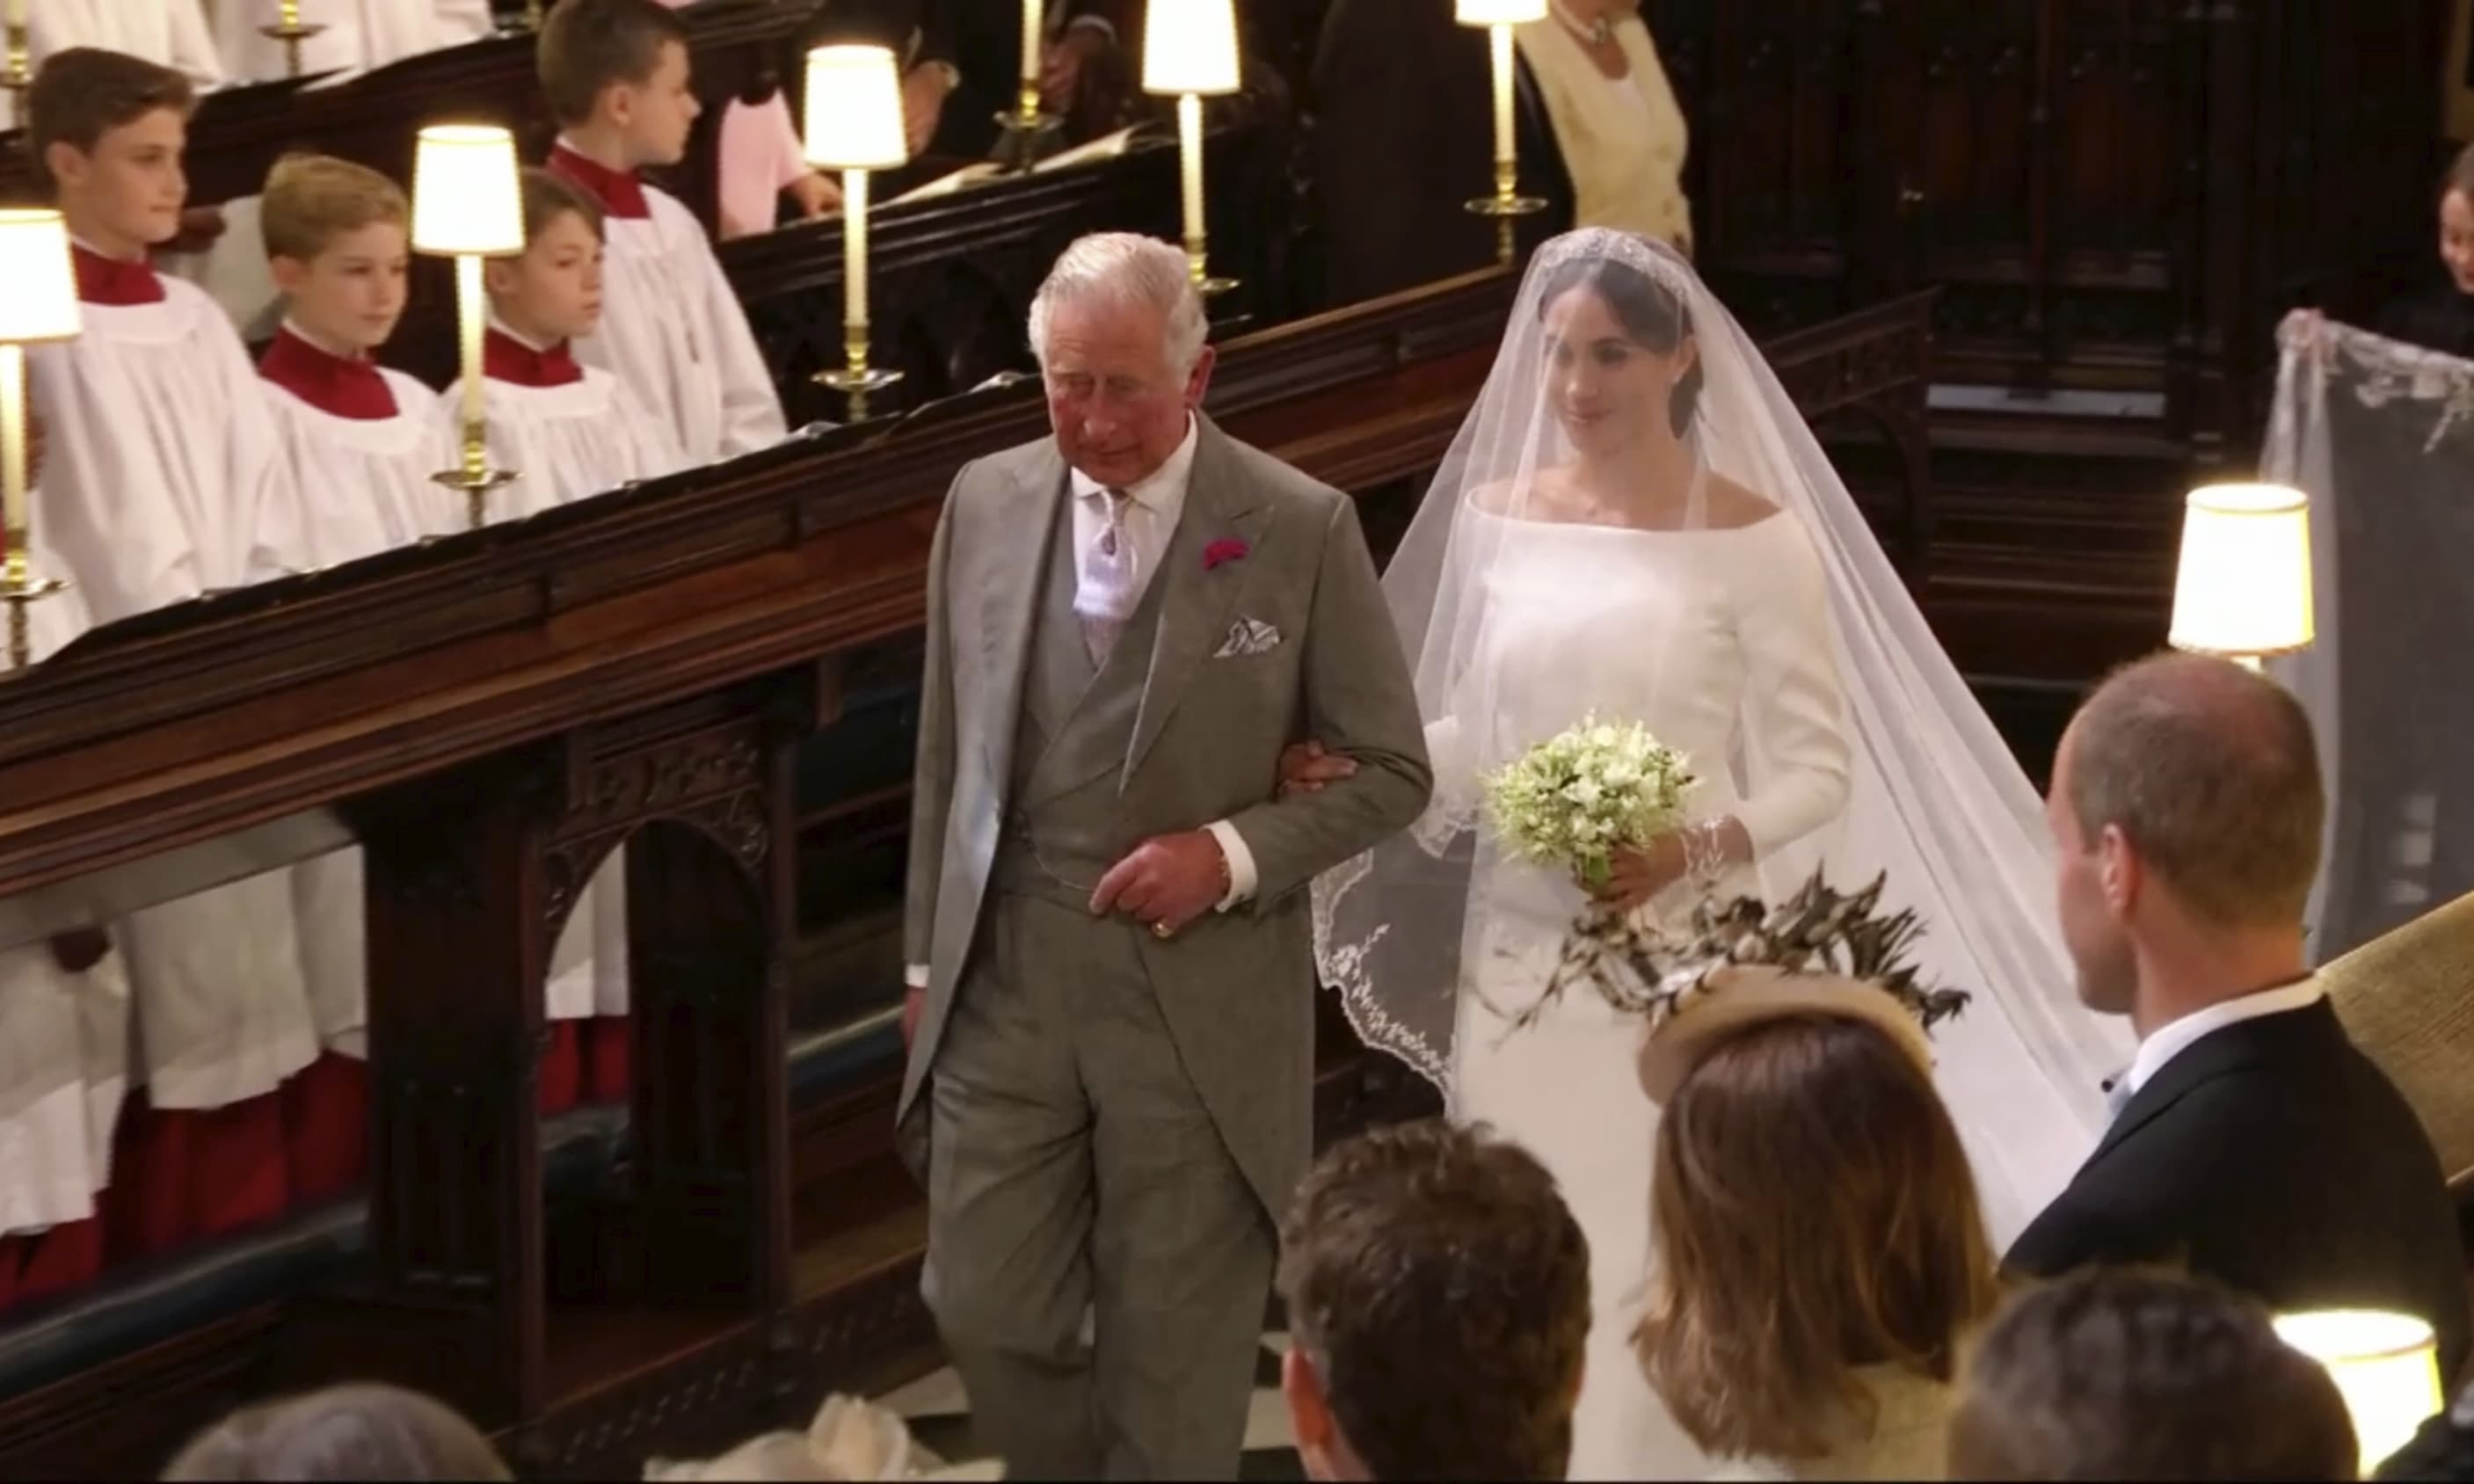 Meghan Markle walks down the aisle with Prince Charles for her wedding ceremony at St. George's Chapel in Windsor Castle. — AFP